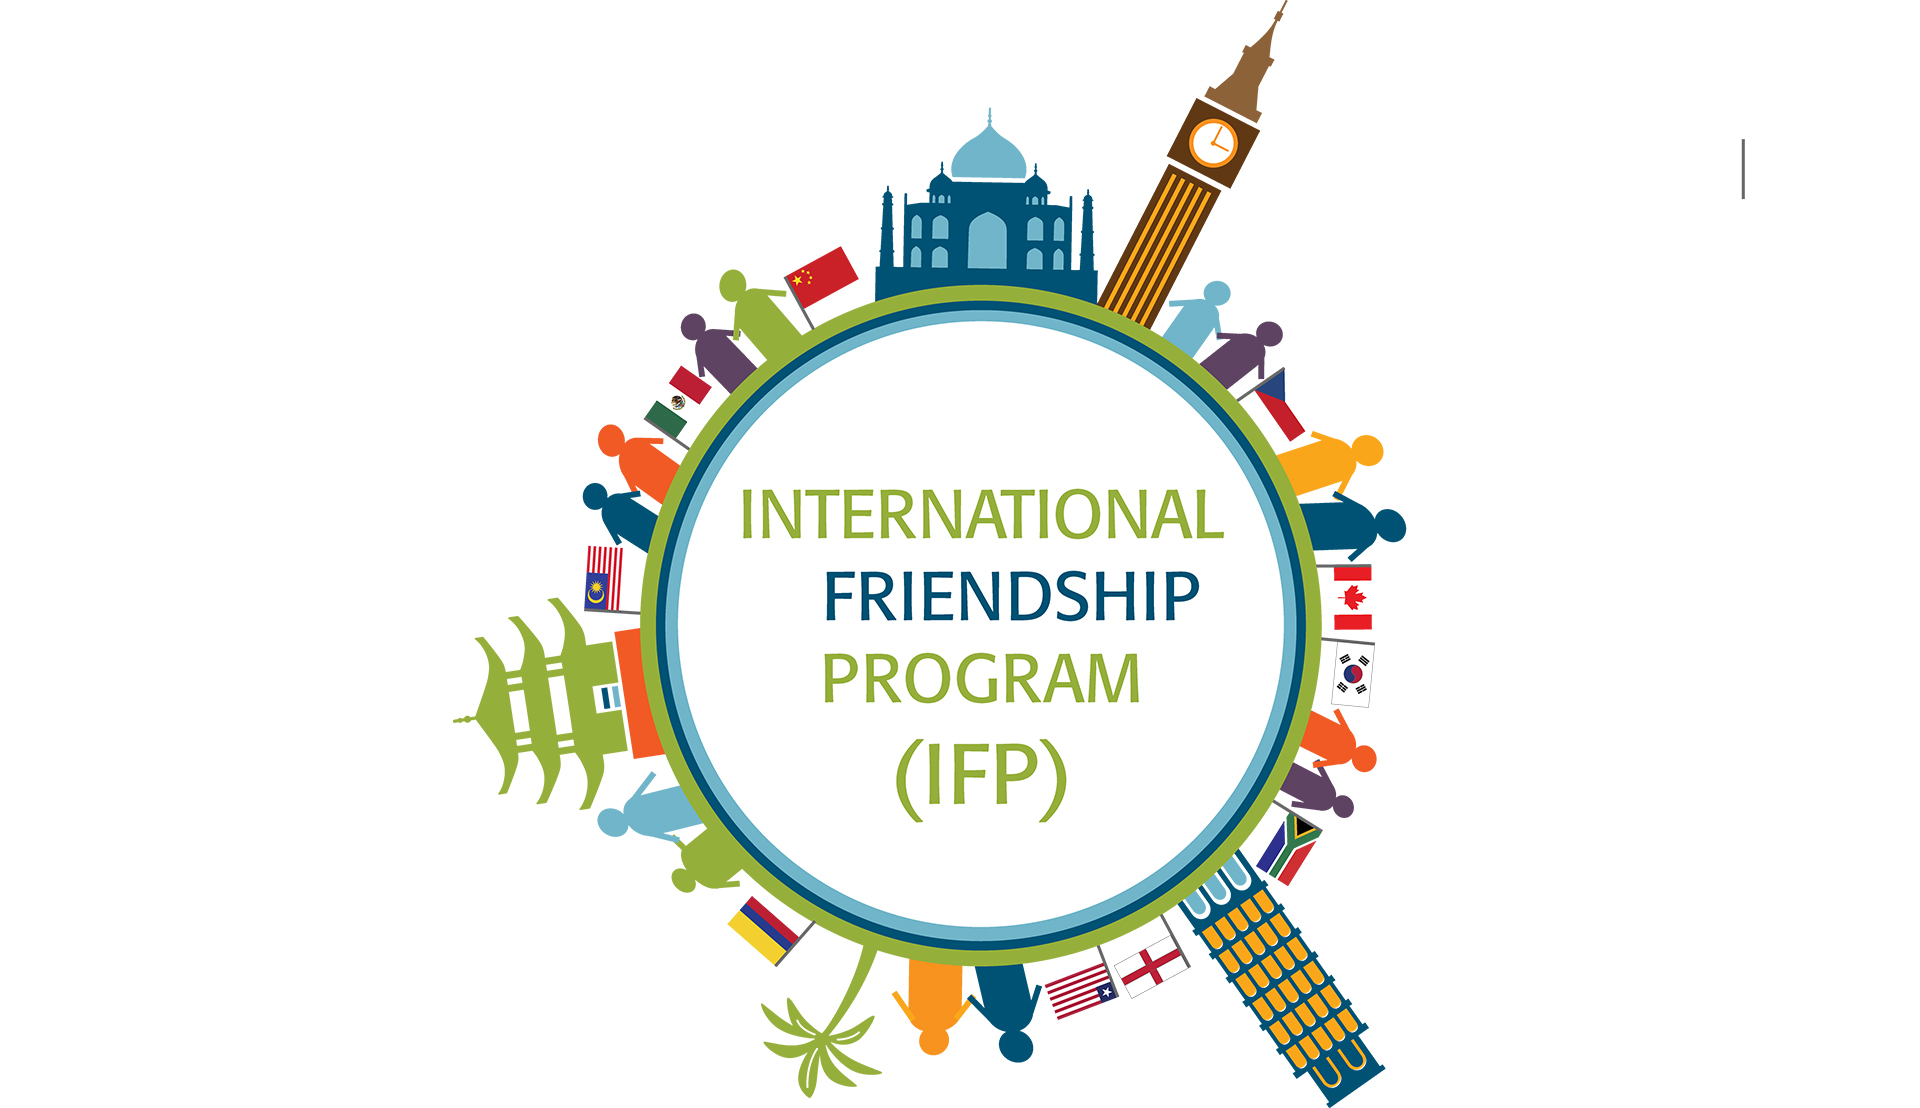 Image of International Friendship Program logo